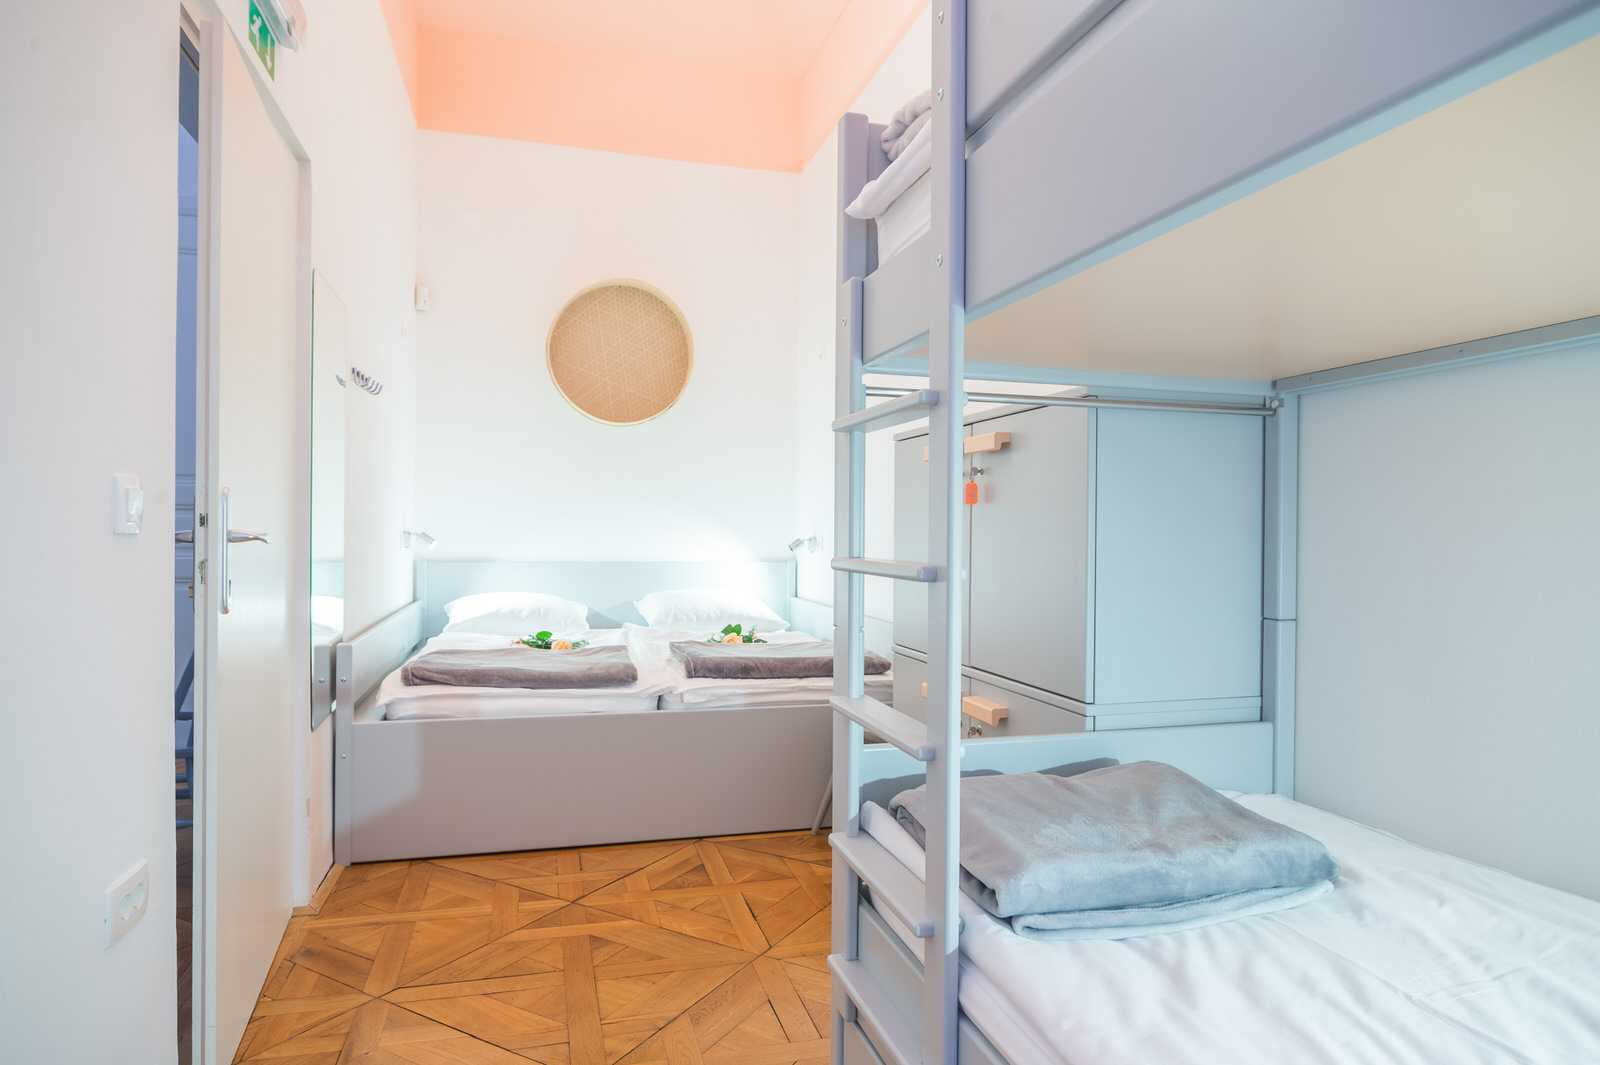 This bedroom has one double bed and one bunk bed.